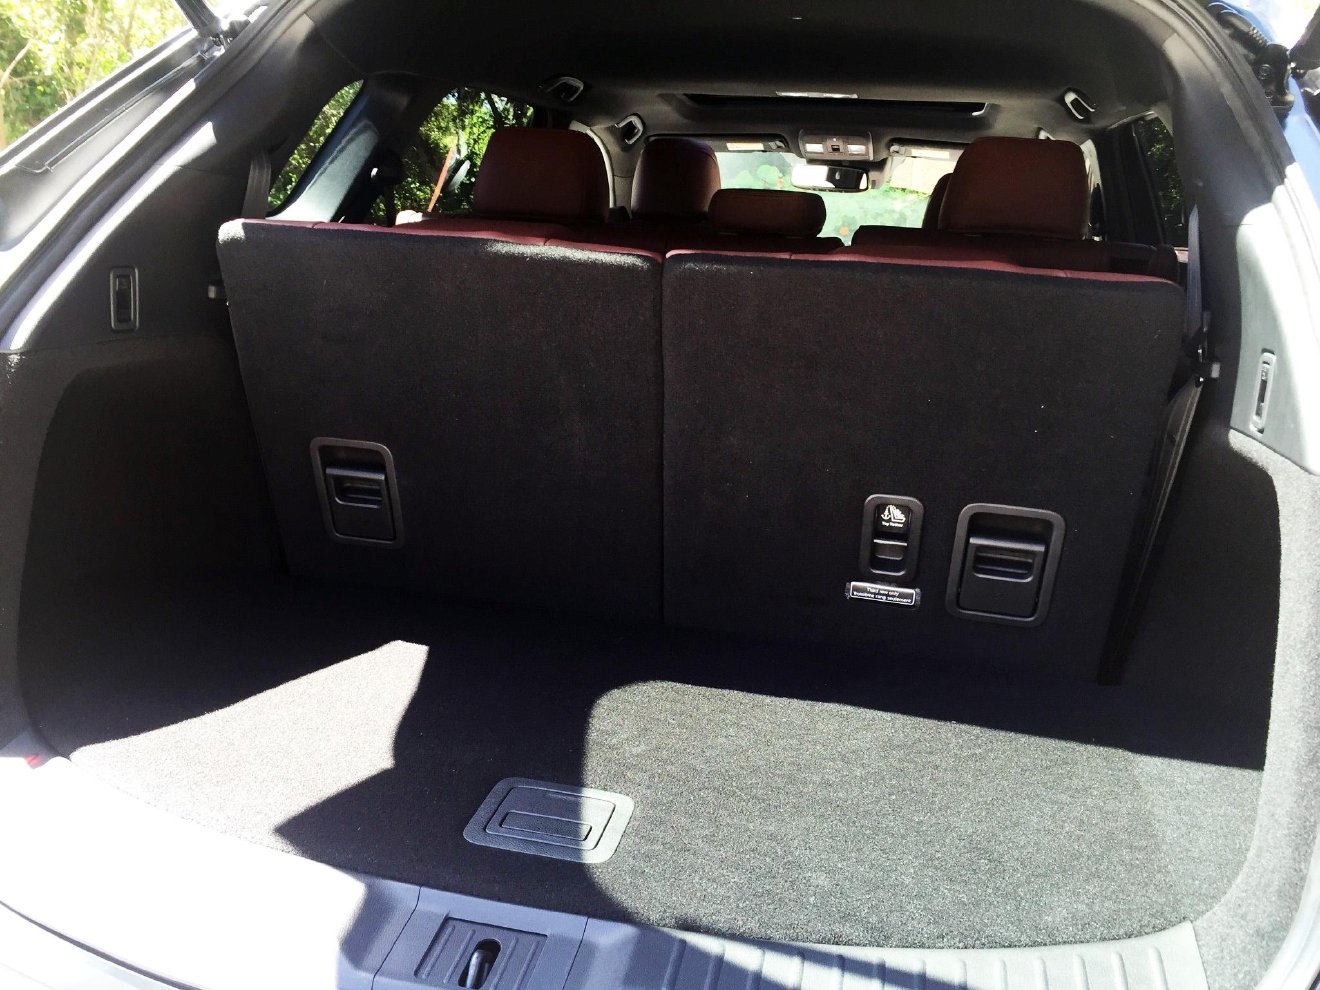 Mazda mazda cx 9 third row : 2016 Mazda CX-9: Family vehicles can be sexy [First Look] | WSET